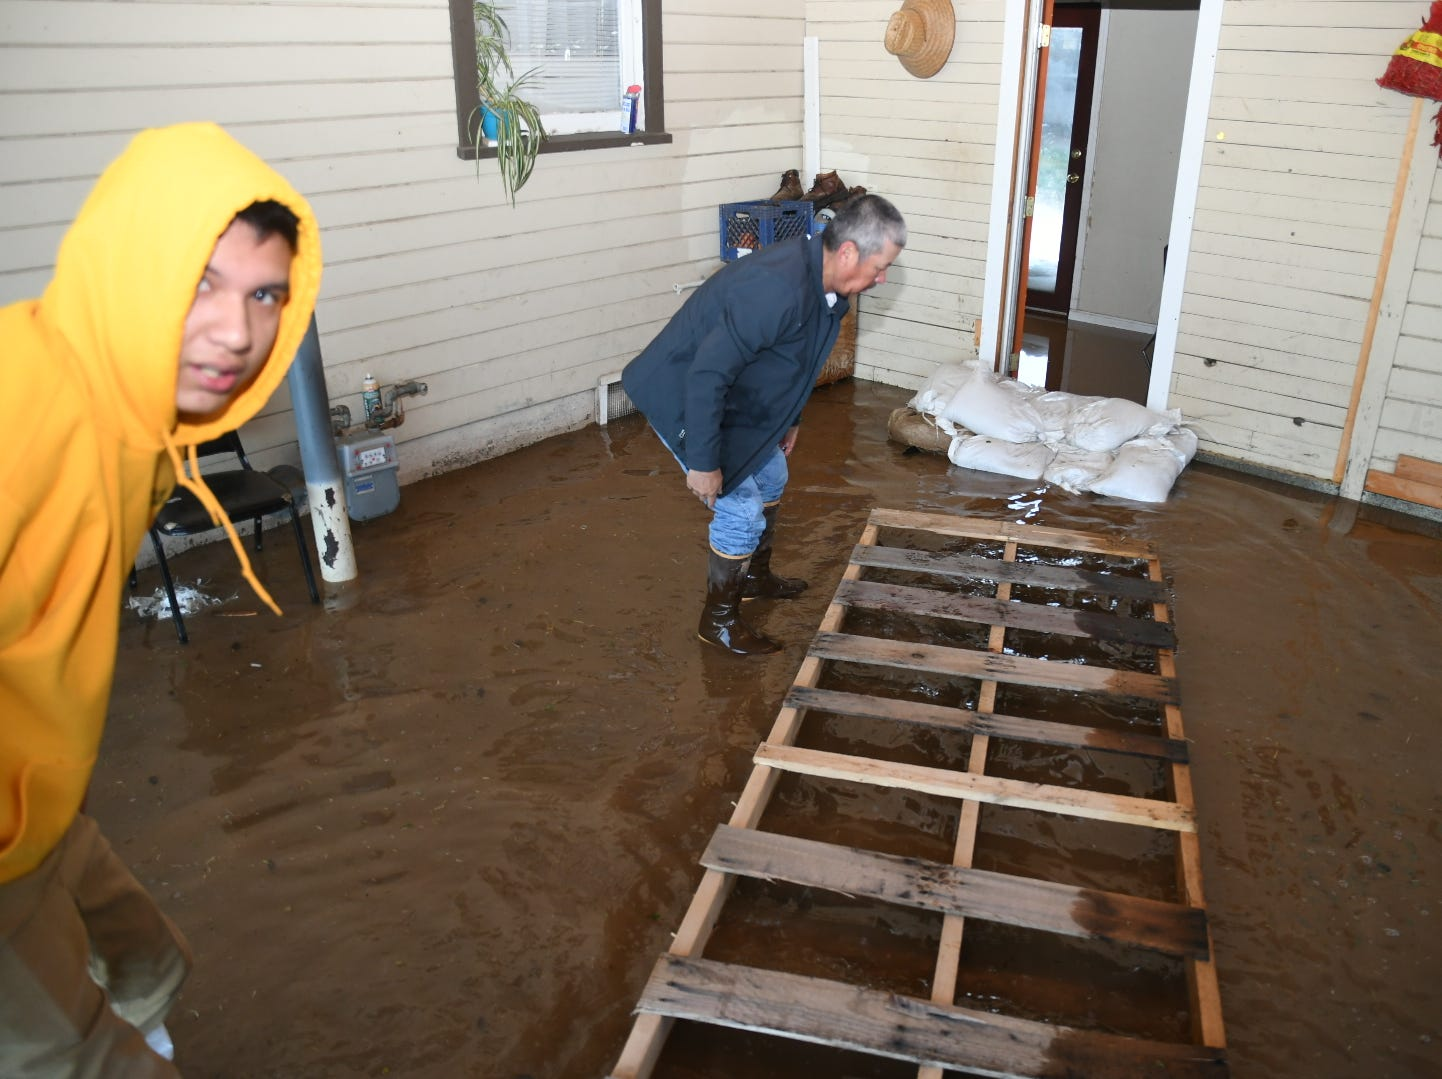 The Lara family's home flooded early Saturday morning.